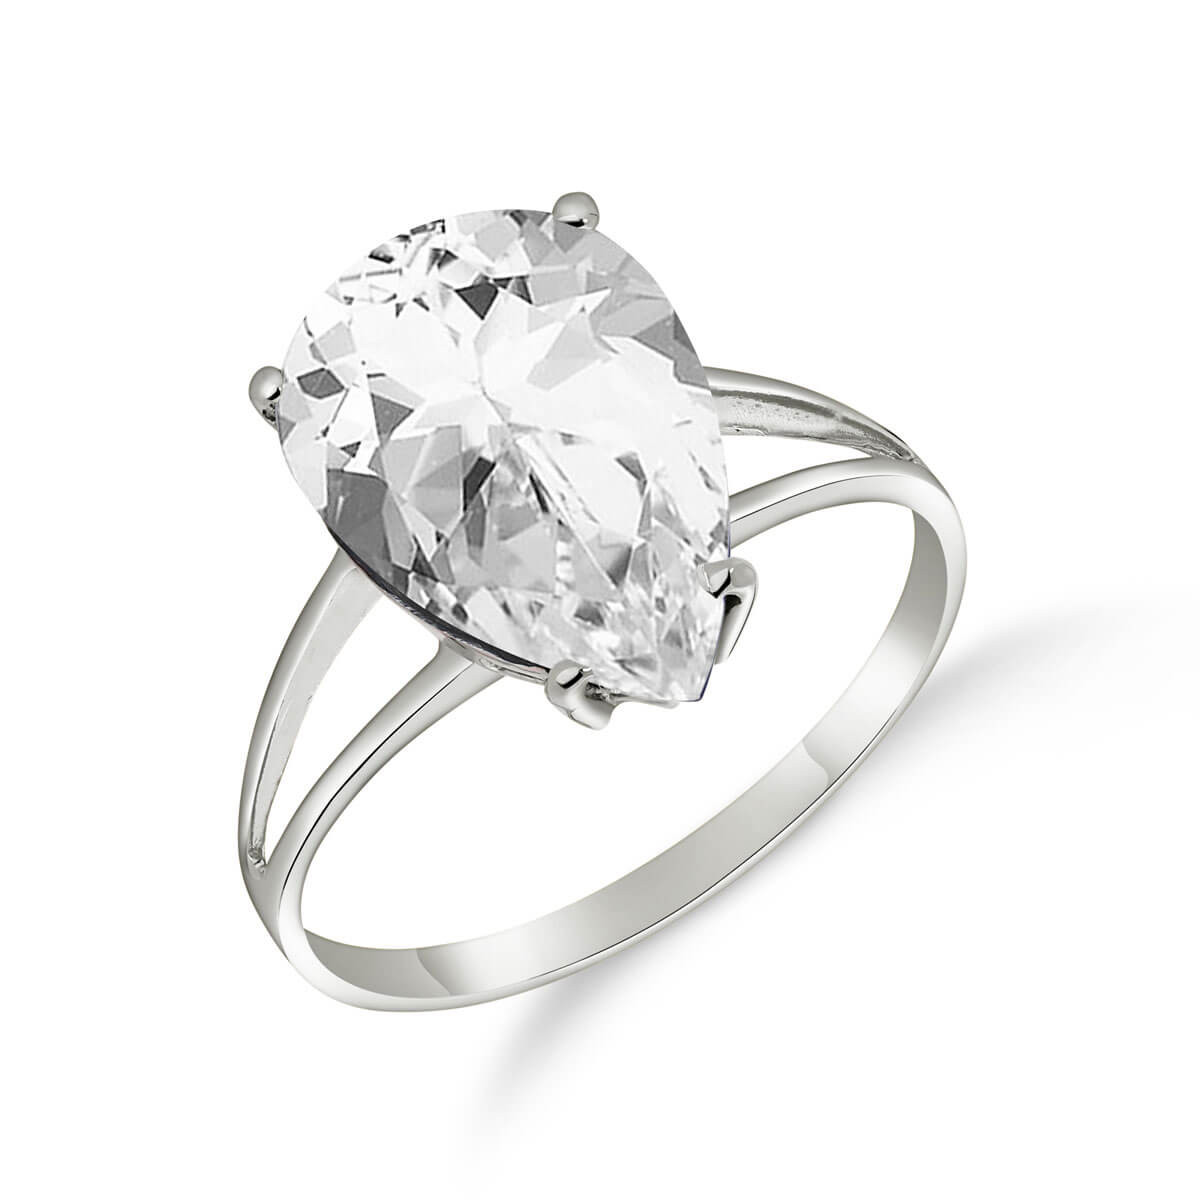 White Topaz Pear Drop Ring 5 ct in 9ct White Gold